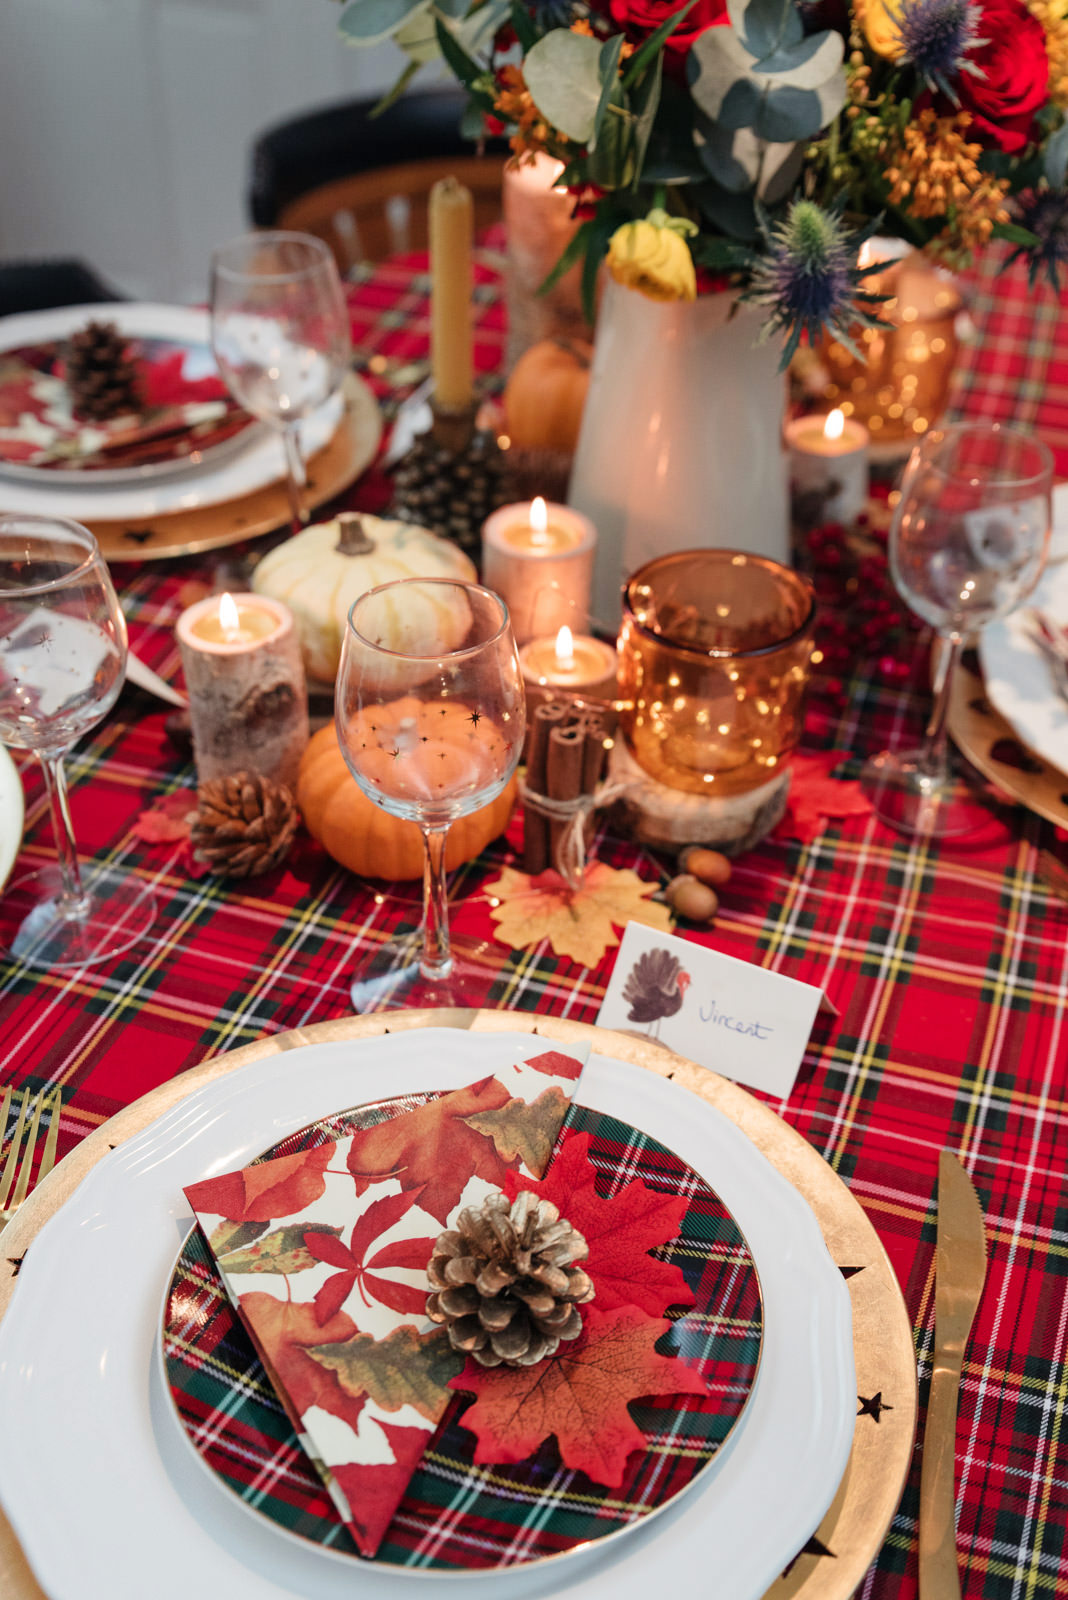 Blog-Mode-And-The-City-Lifestyle-Thanksgiving-2017-6